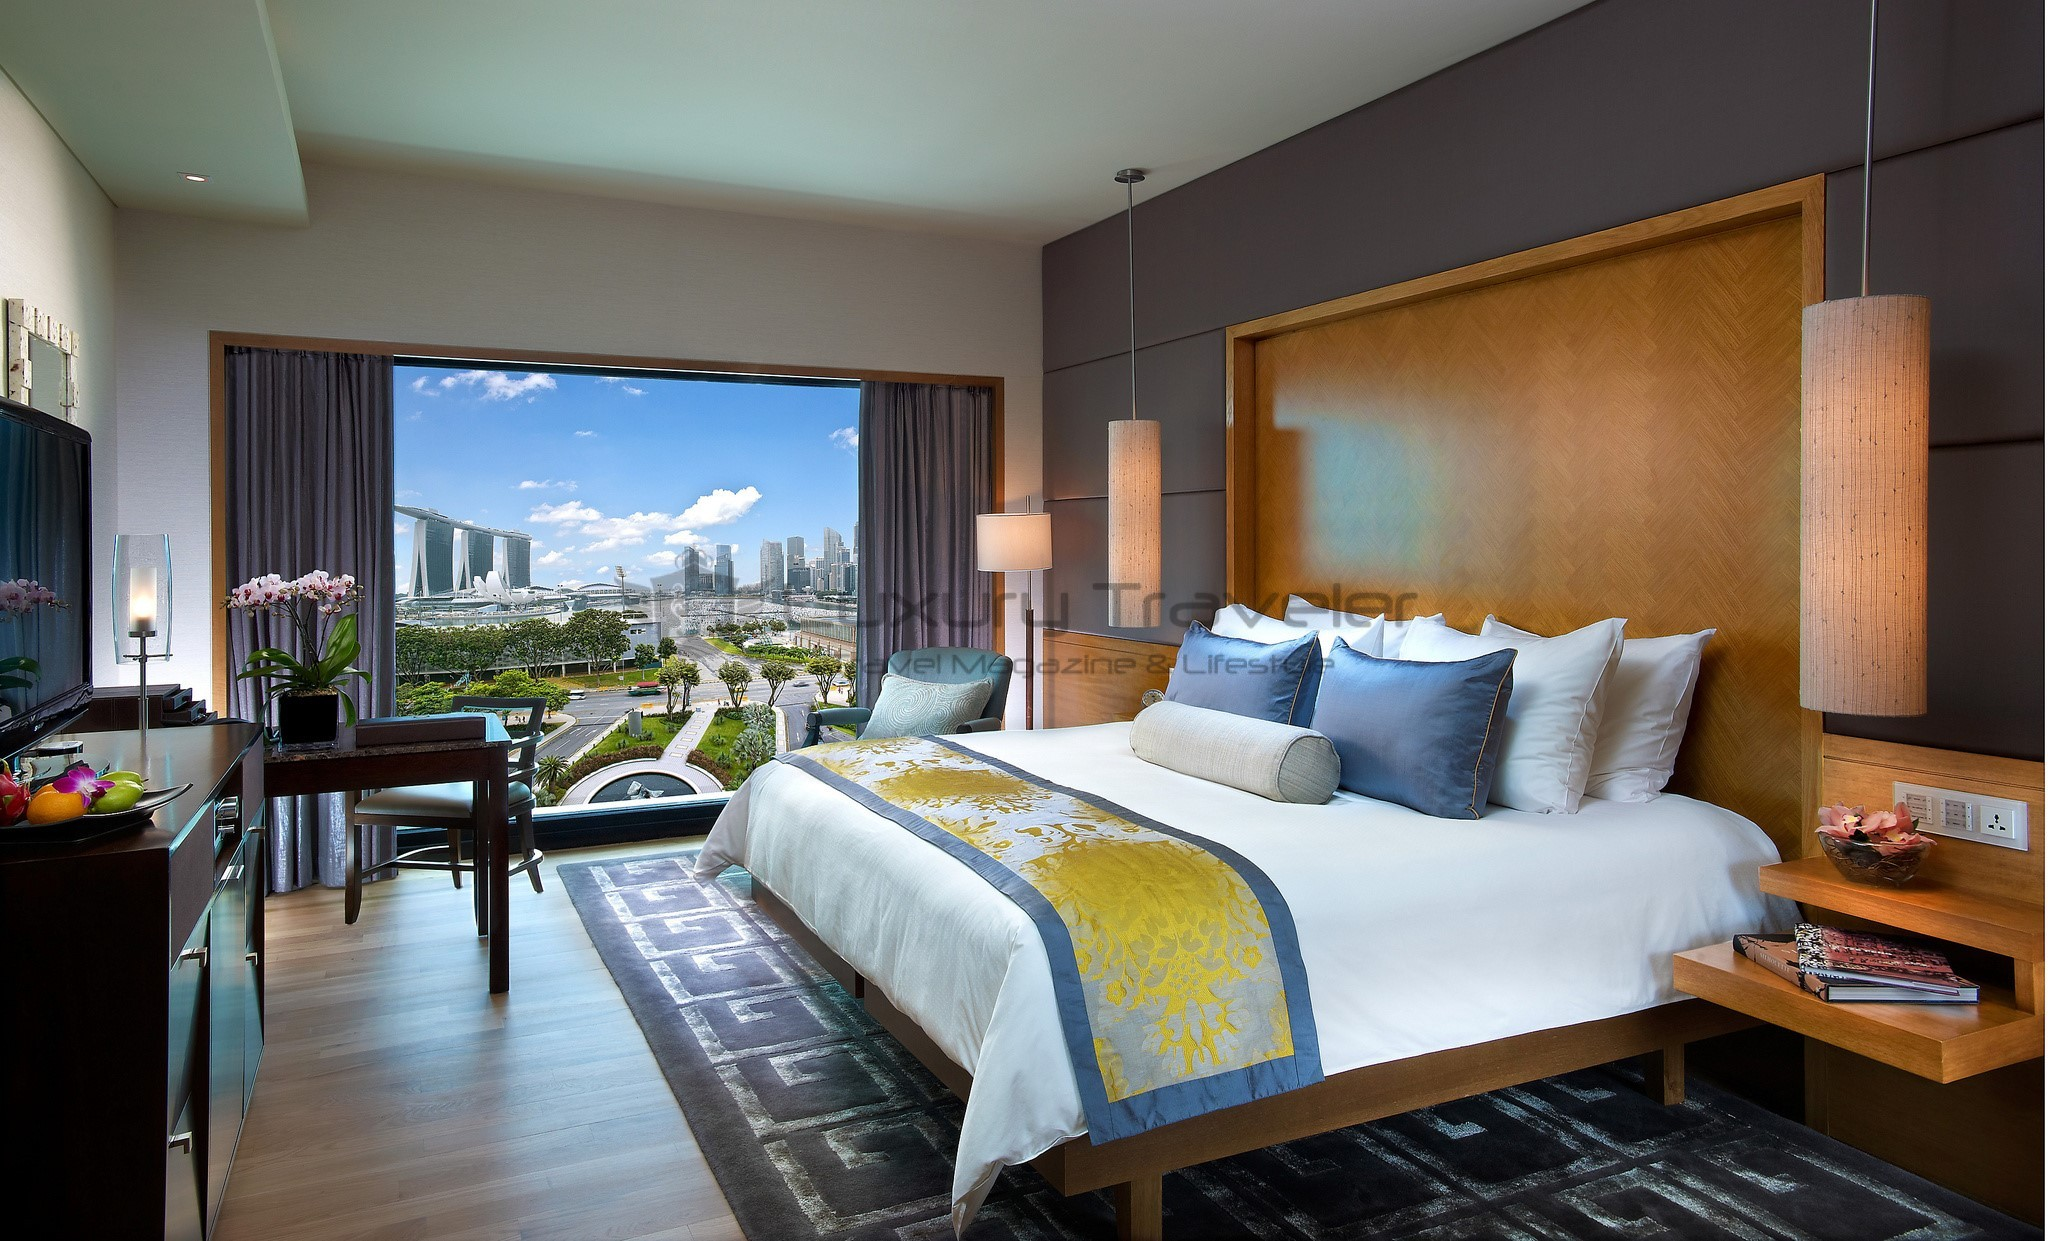 Mandarin oriental singapore luxury 5 star hotel luxury for 5 star bedroom designs